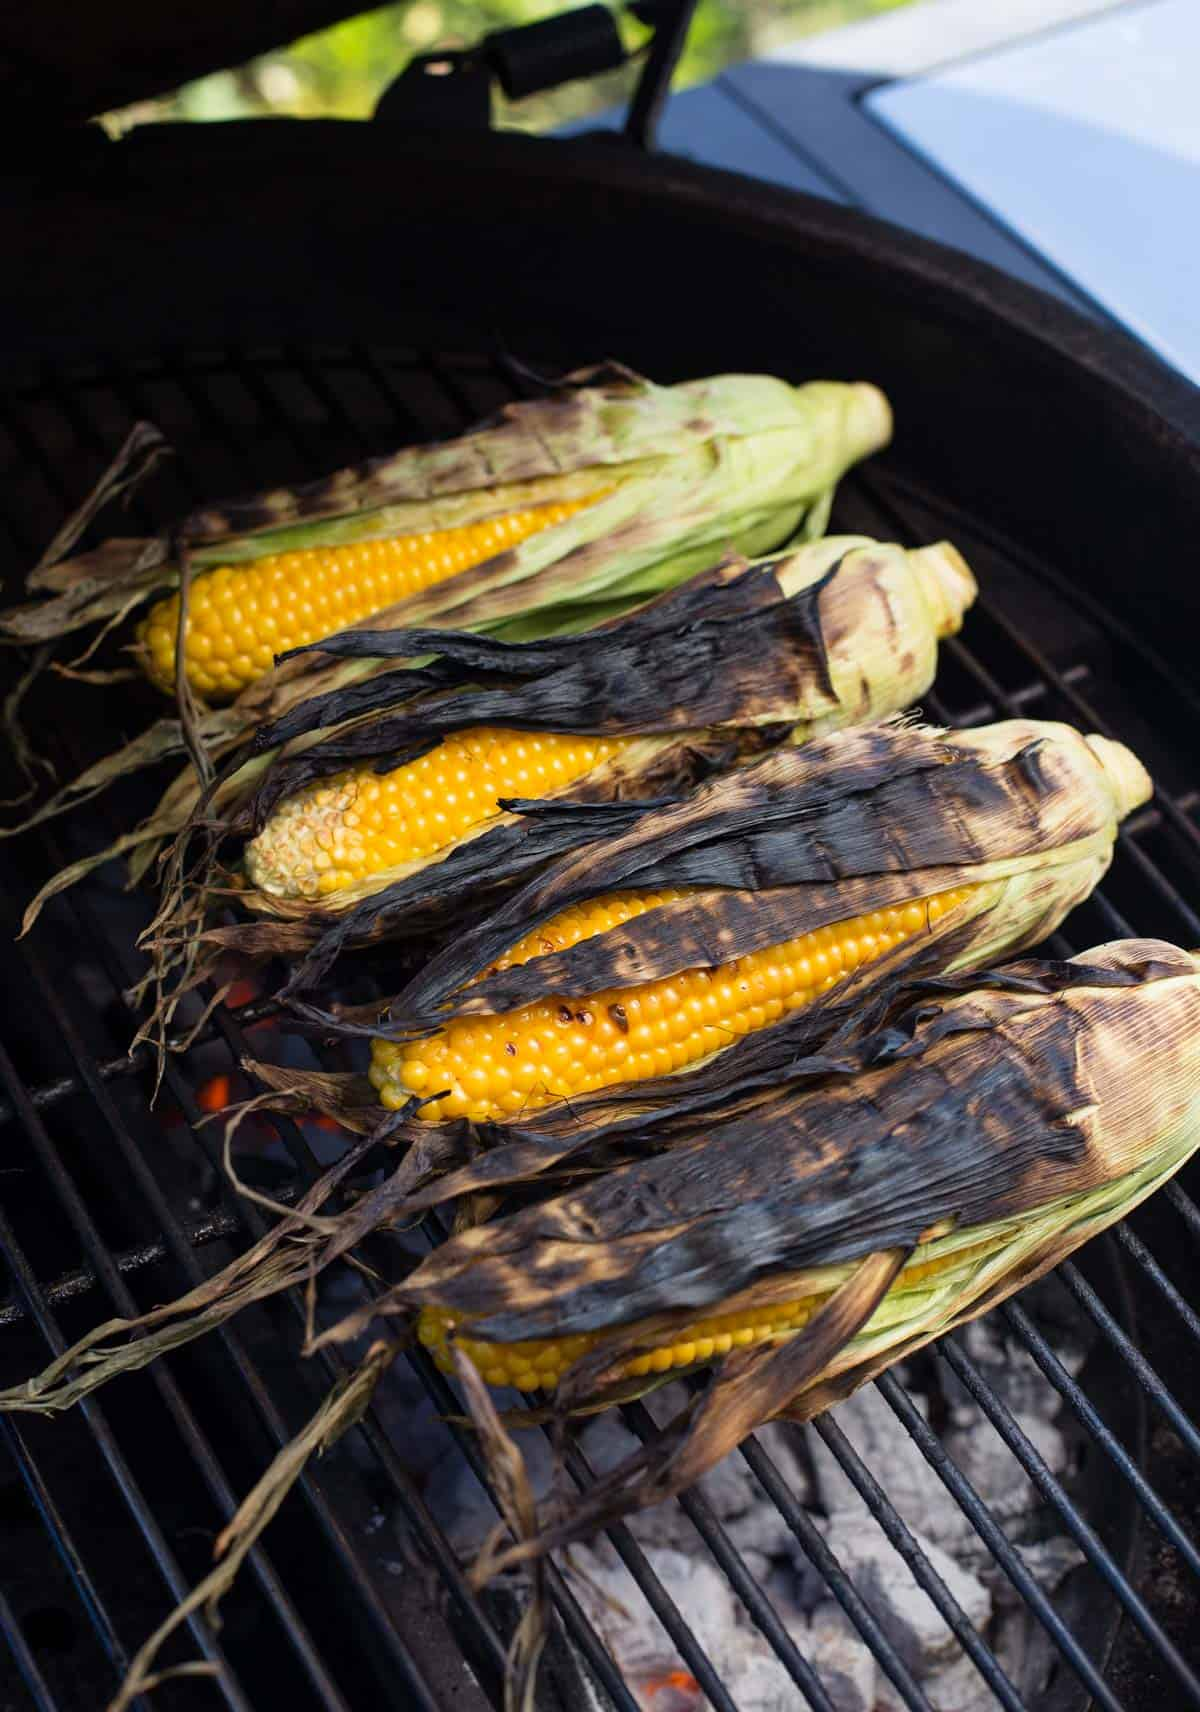 Four ears of corn on a grill